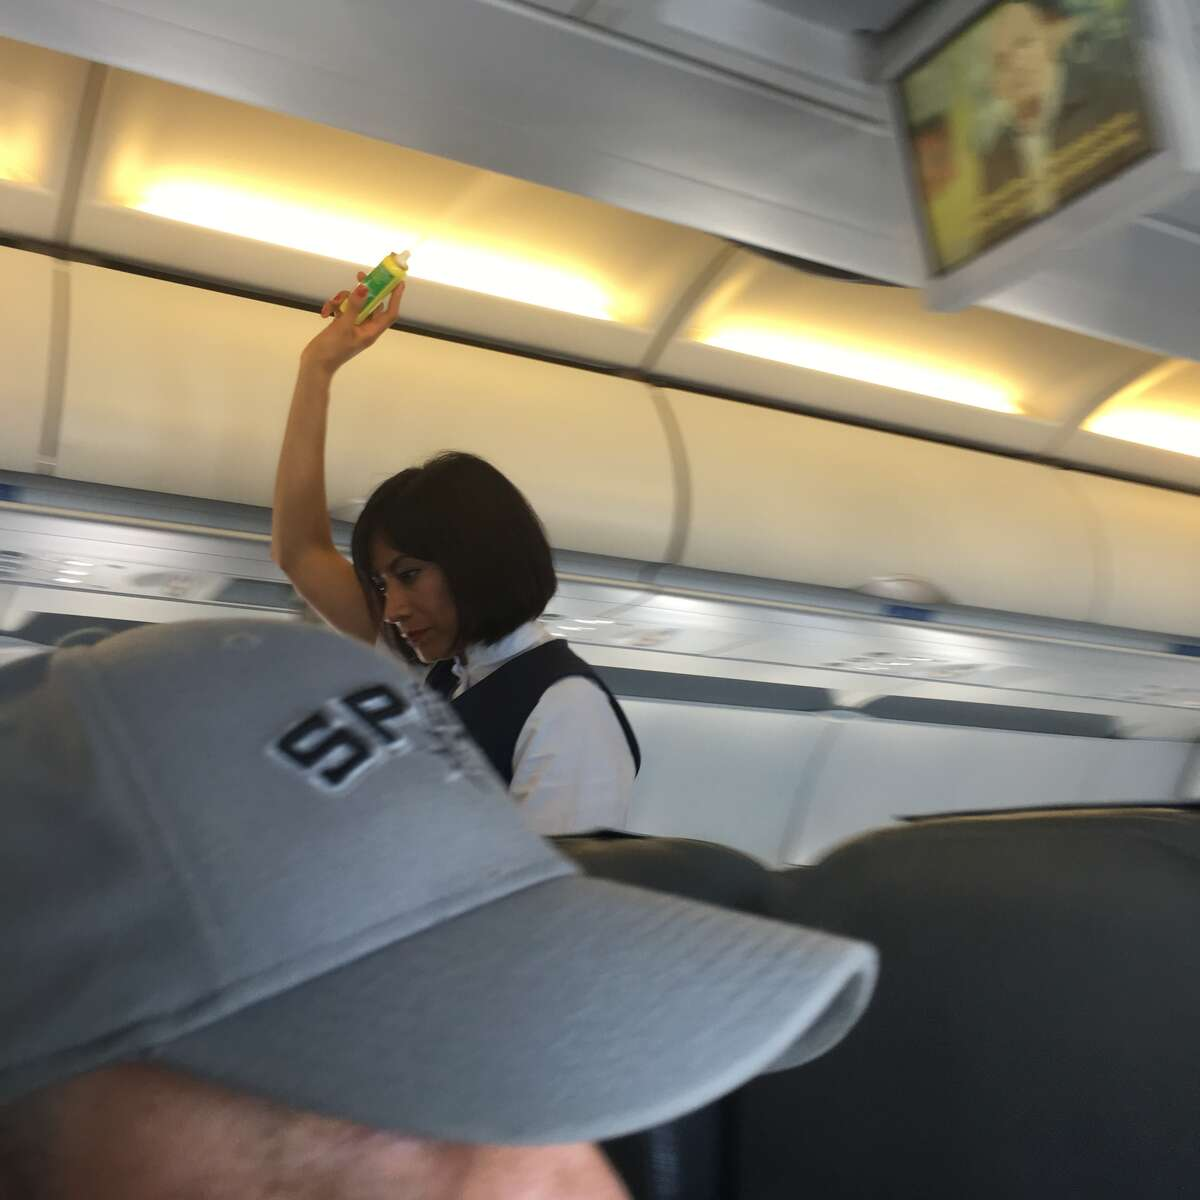 1. Pesticides are sprayed into the vents of flights entering Cuba Stewardesses advised passengers the crew would spray the cabin as the plane descended, but assured it was not harmful to humans as they walked through the aisle, misting it into the air.